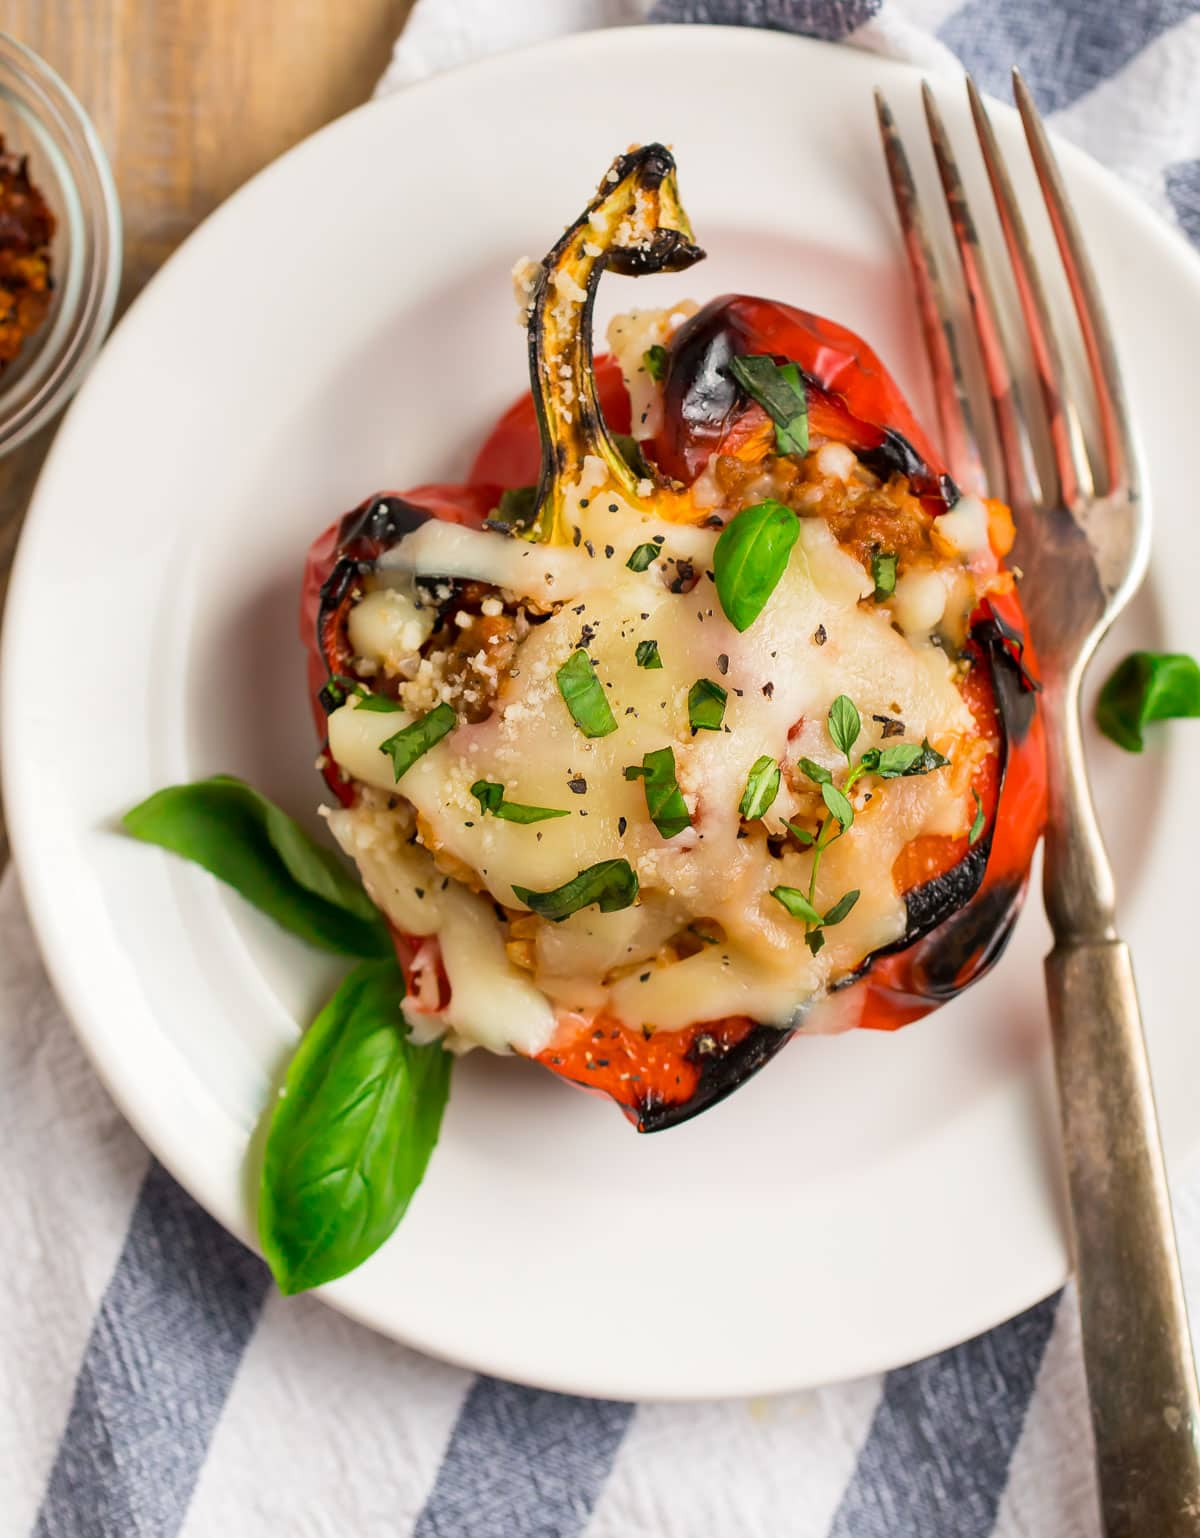 A grilled stuffed pepper with cheese on a white plate